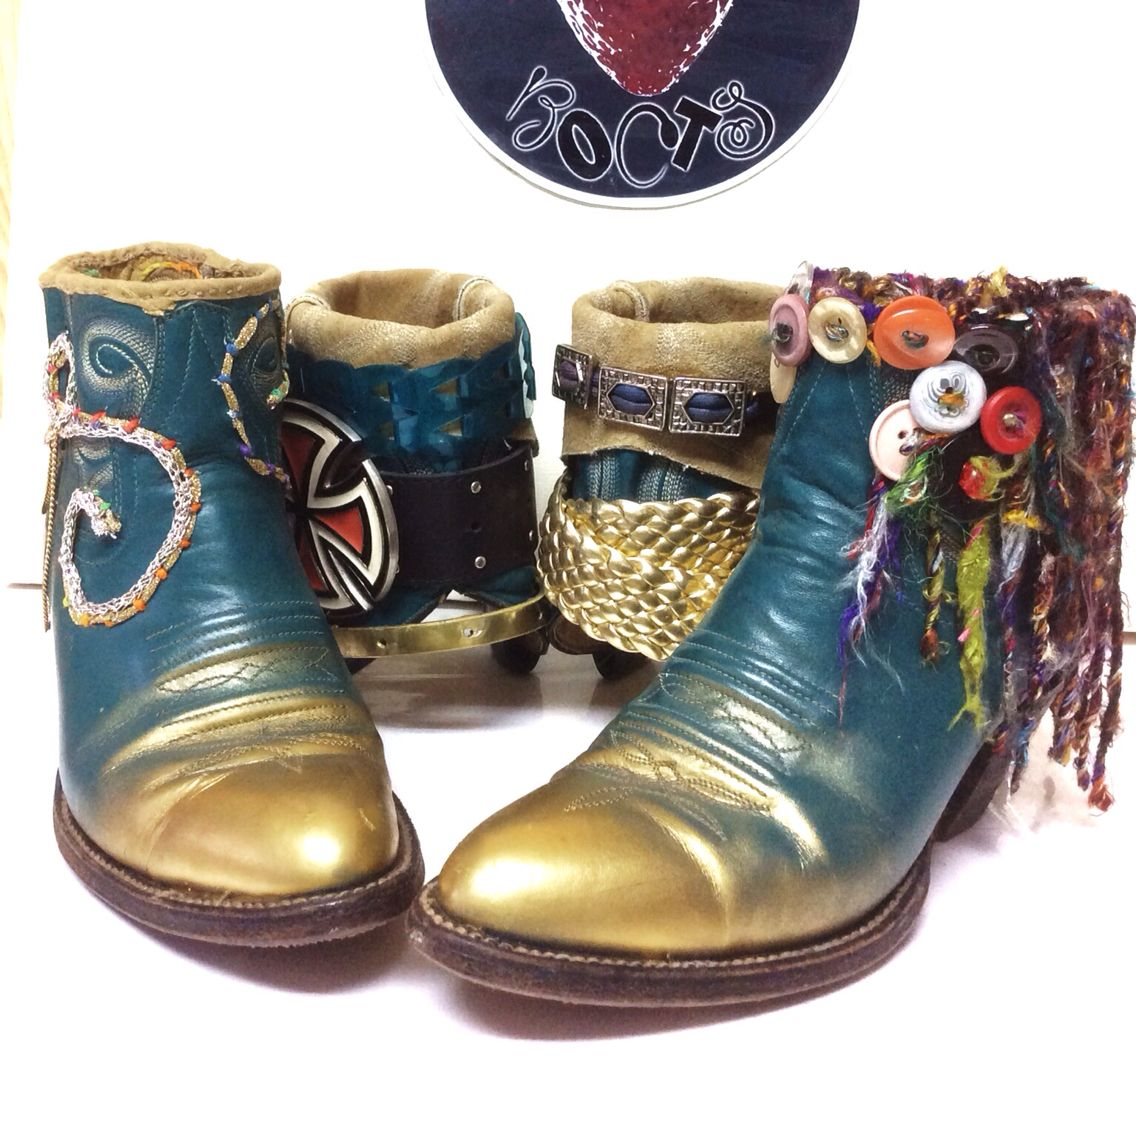 Fnur way boots. have a new pair for both Saturday and Sunday two weeks out of the month. 色んな顔で持つこちらのブーツで楽しめる♪♪世界中であなただけの特別な1足が待ってます。http://facebook.com/loveberrybrand